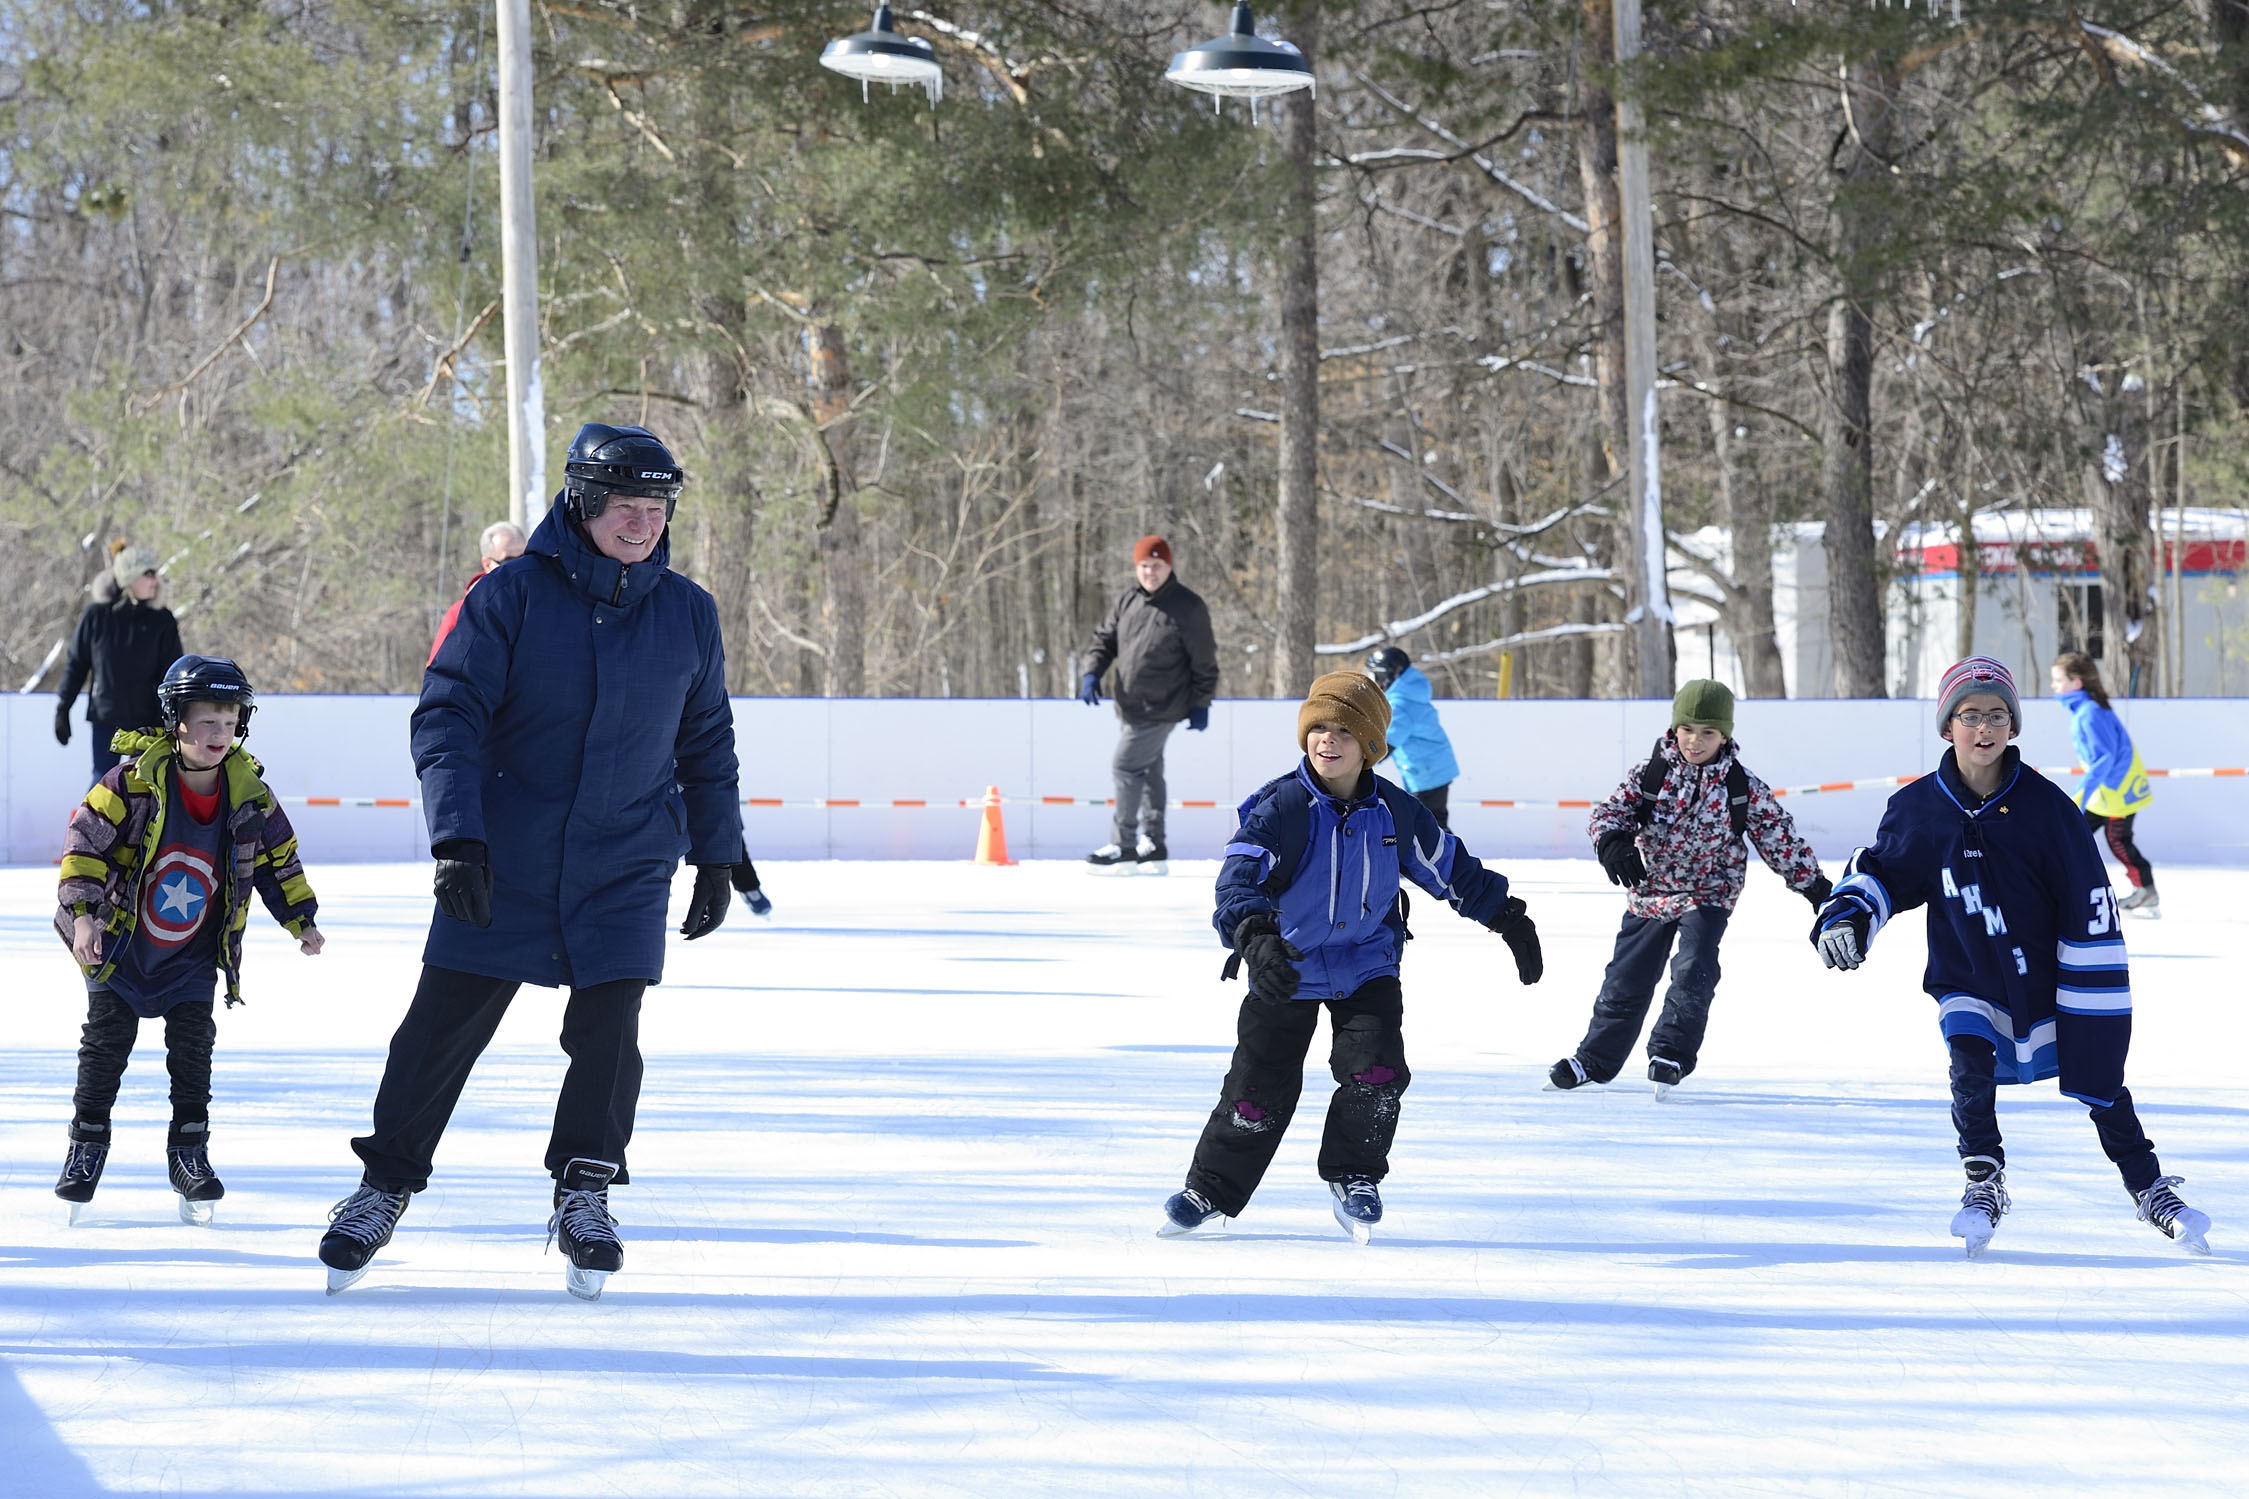 The Governor General concluded the day with some skating on Rideau Hall's historic outdoor skating rink.